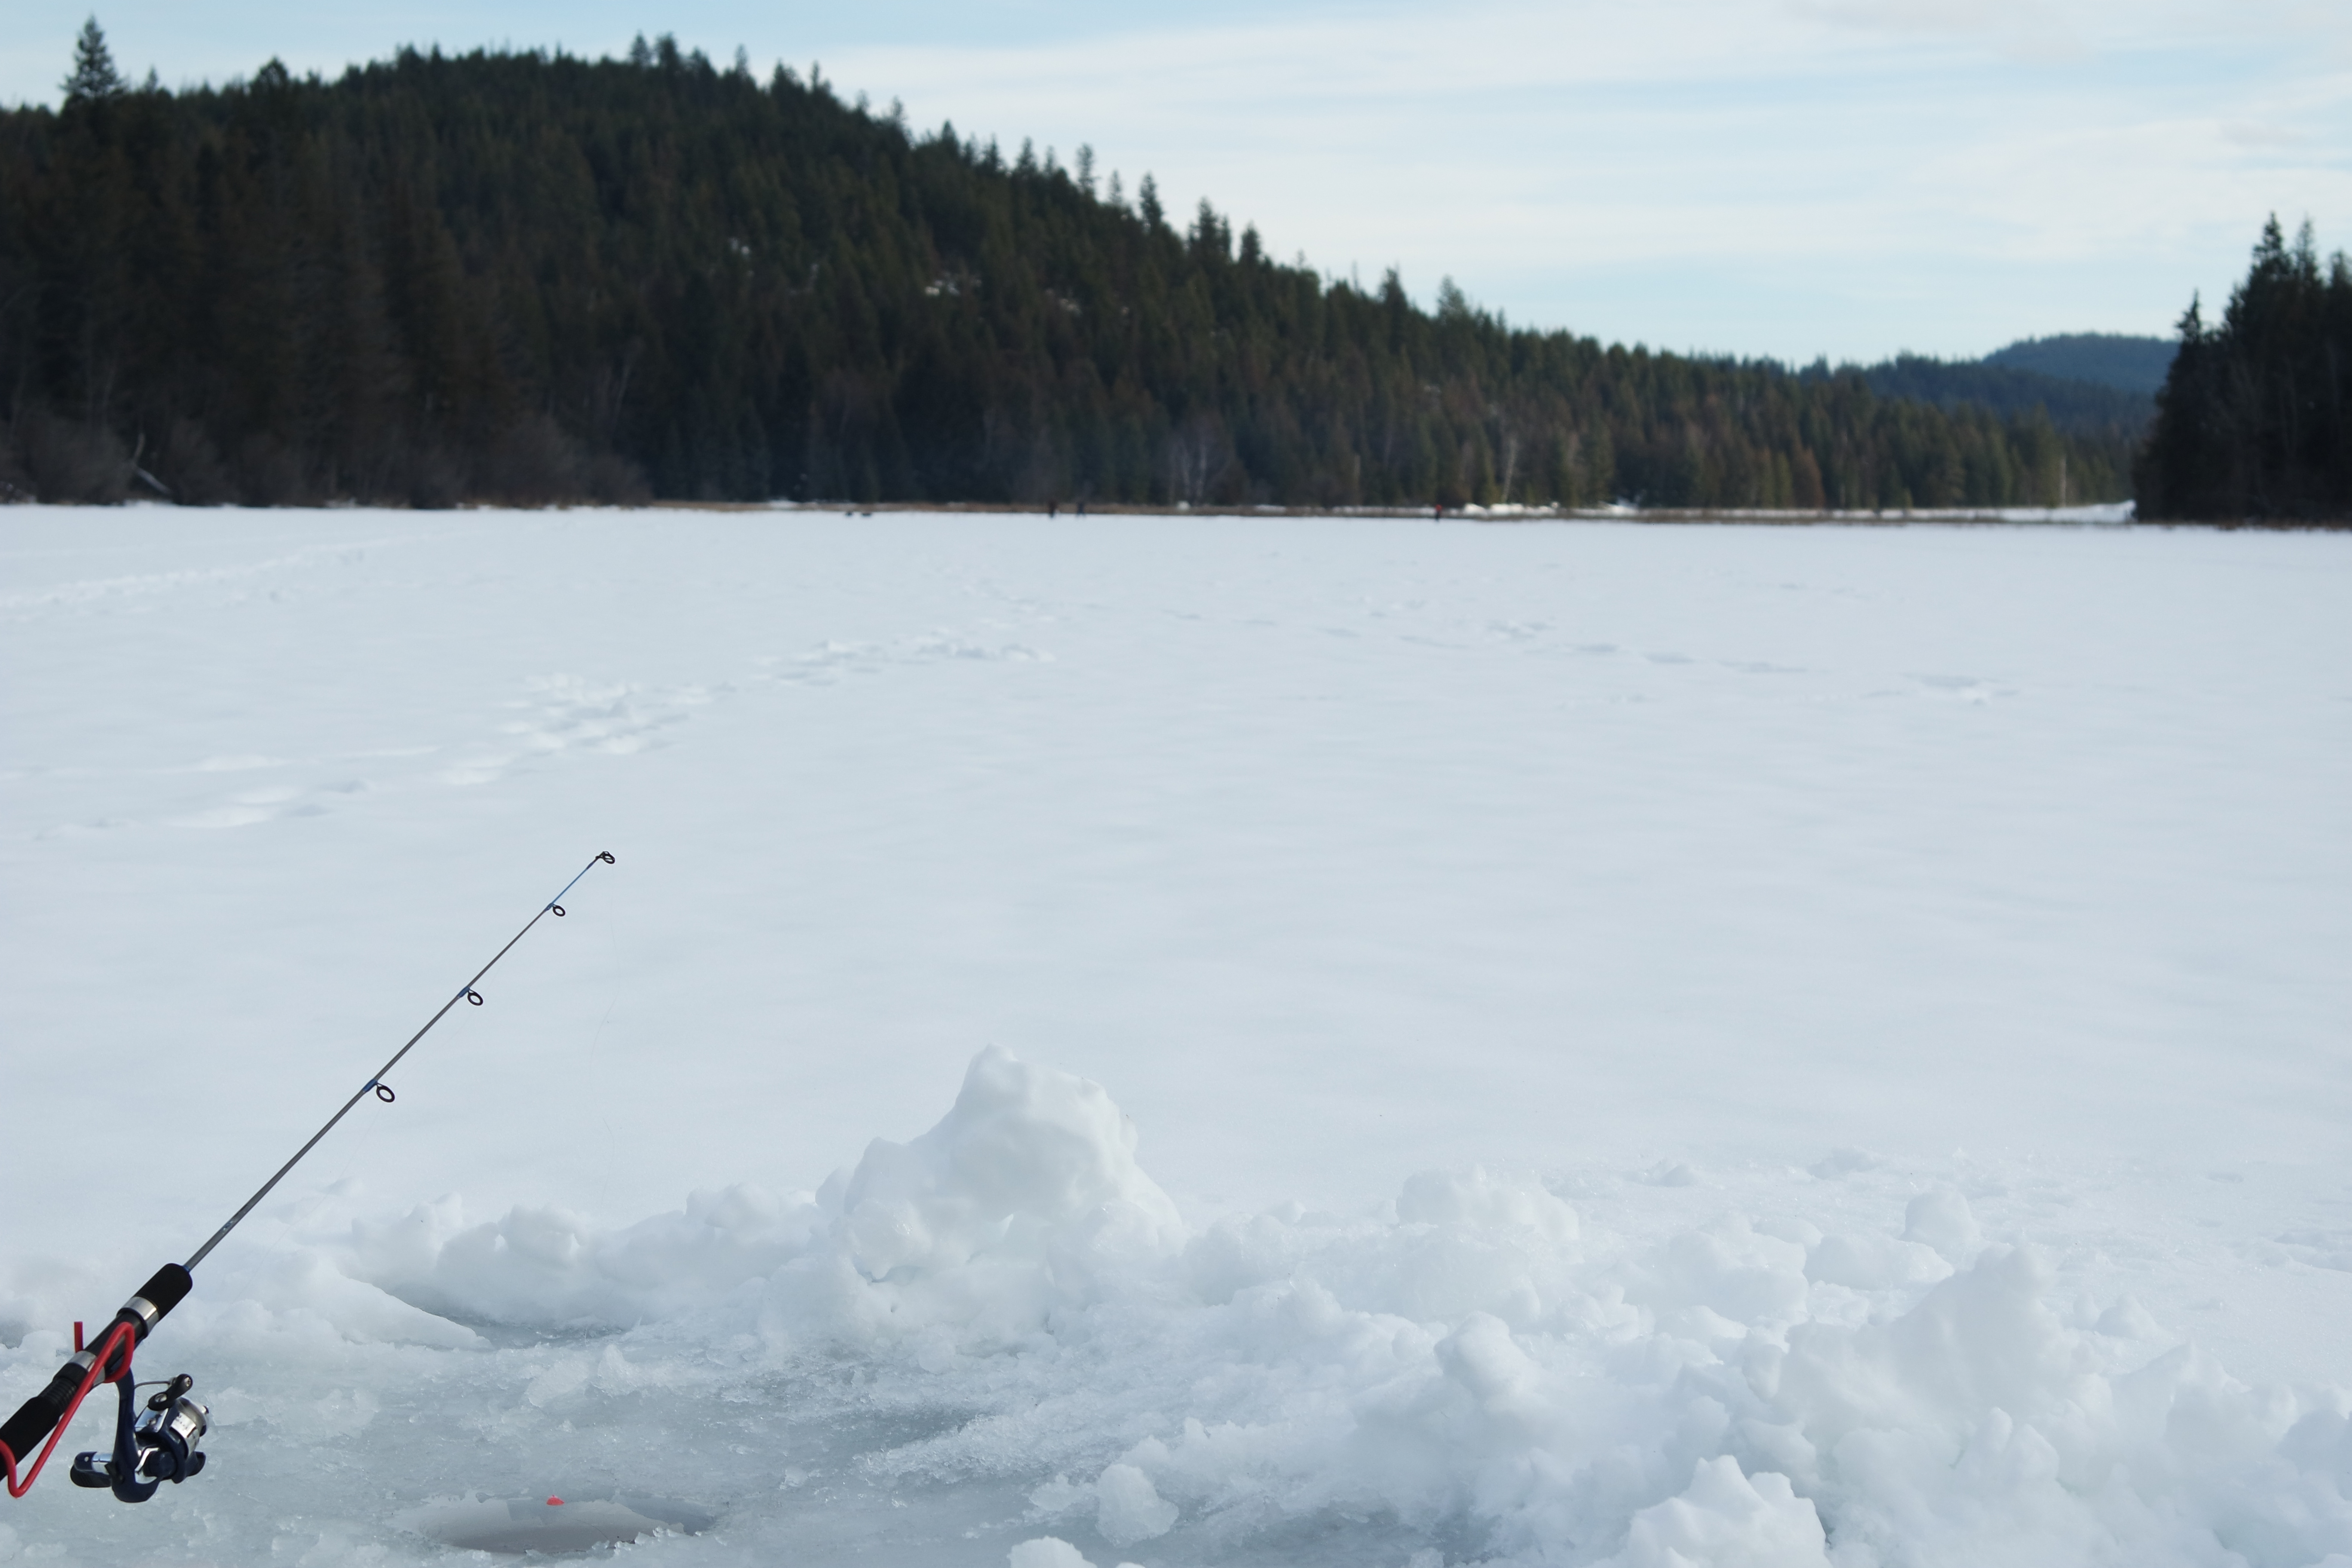 Ice fishing on Bonner Lake